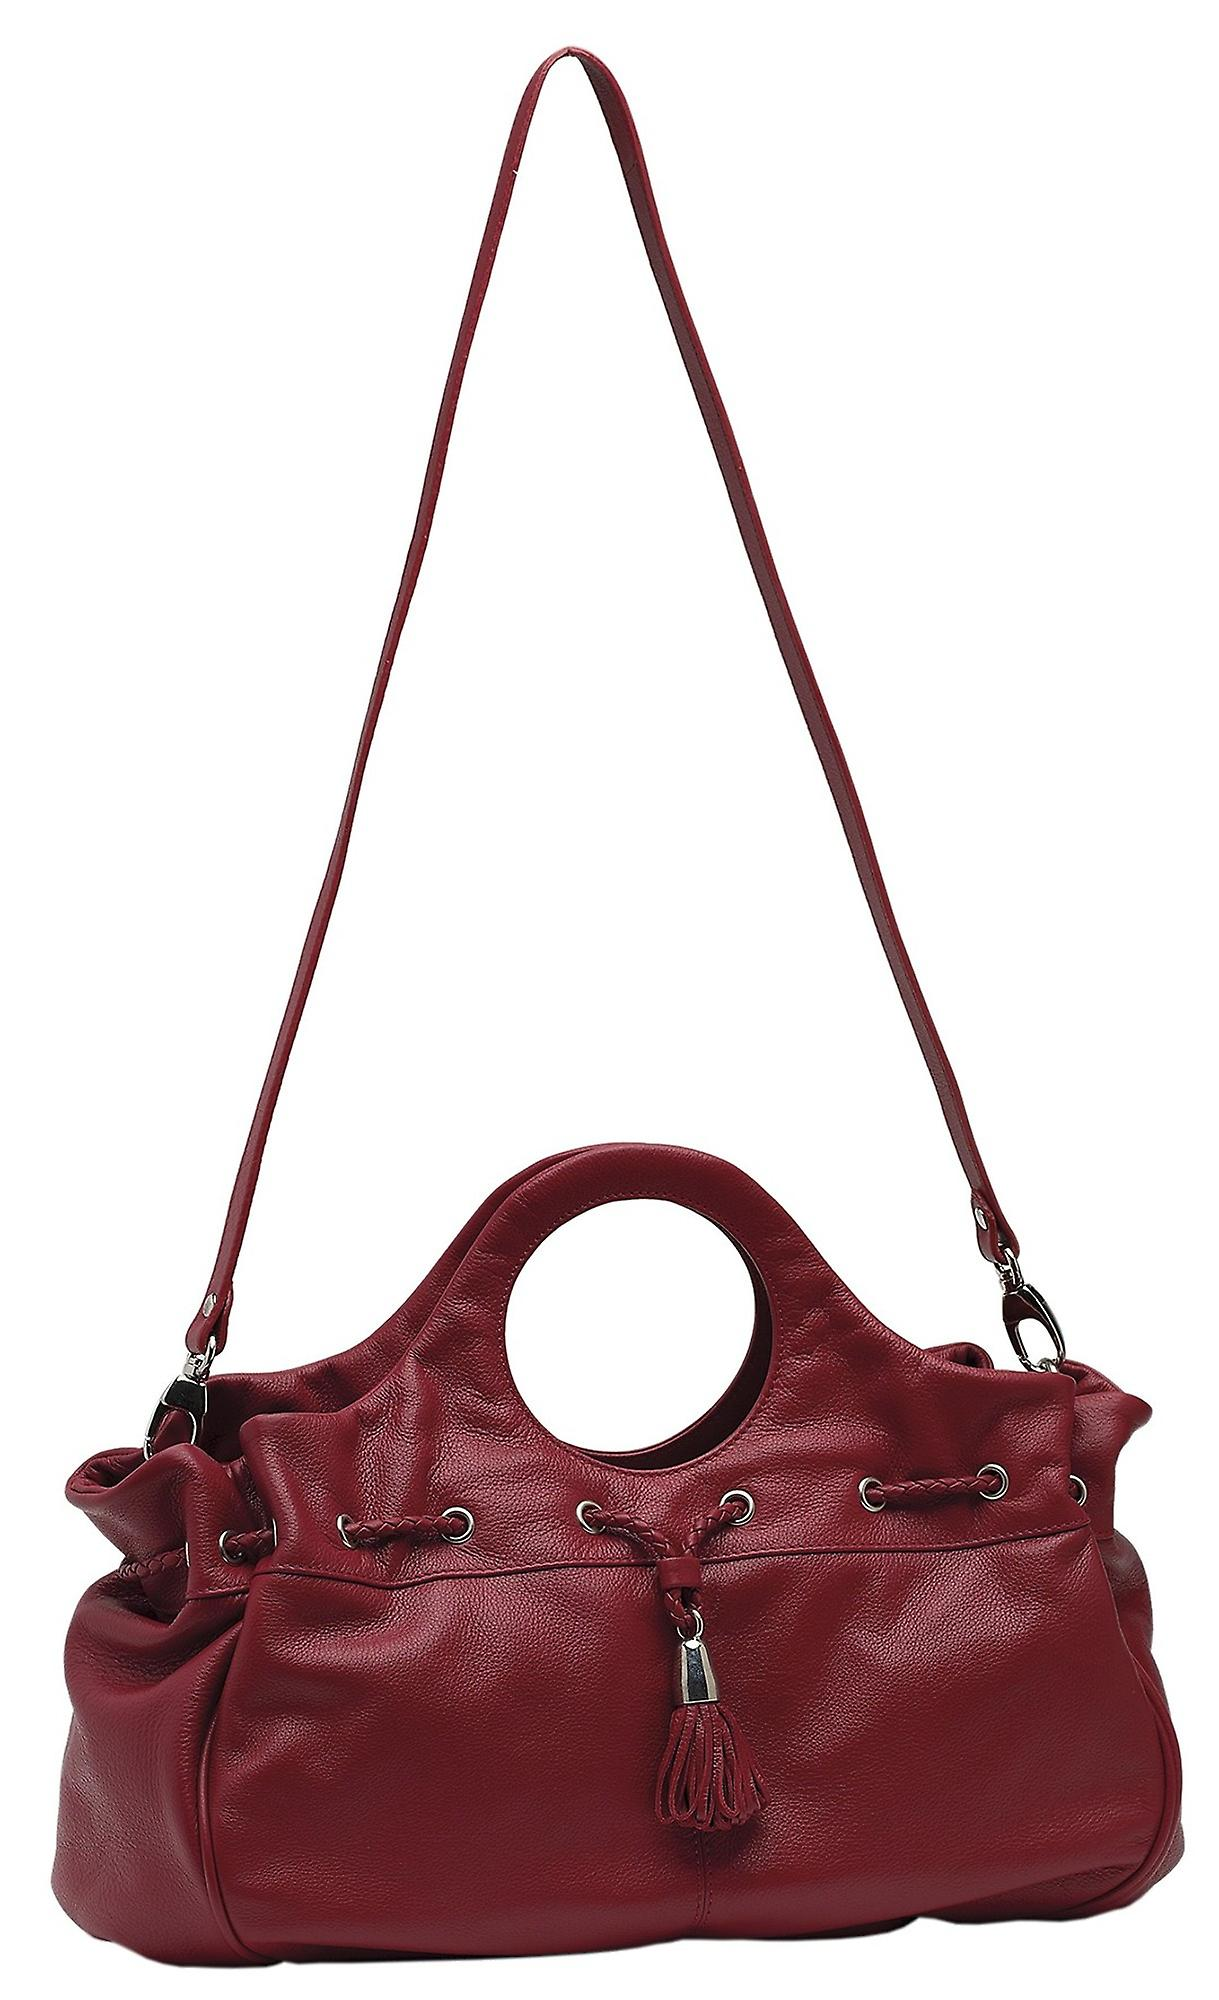 Burgmeister ladies bag T216-114B leather rouge